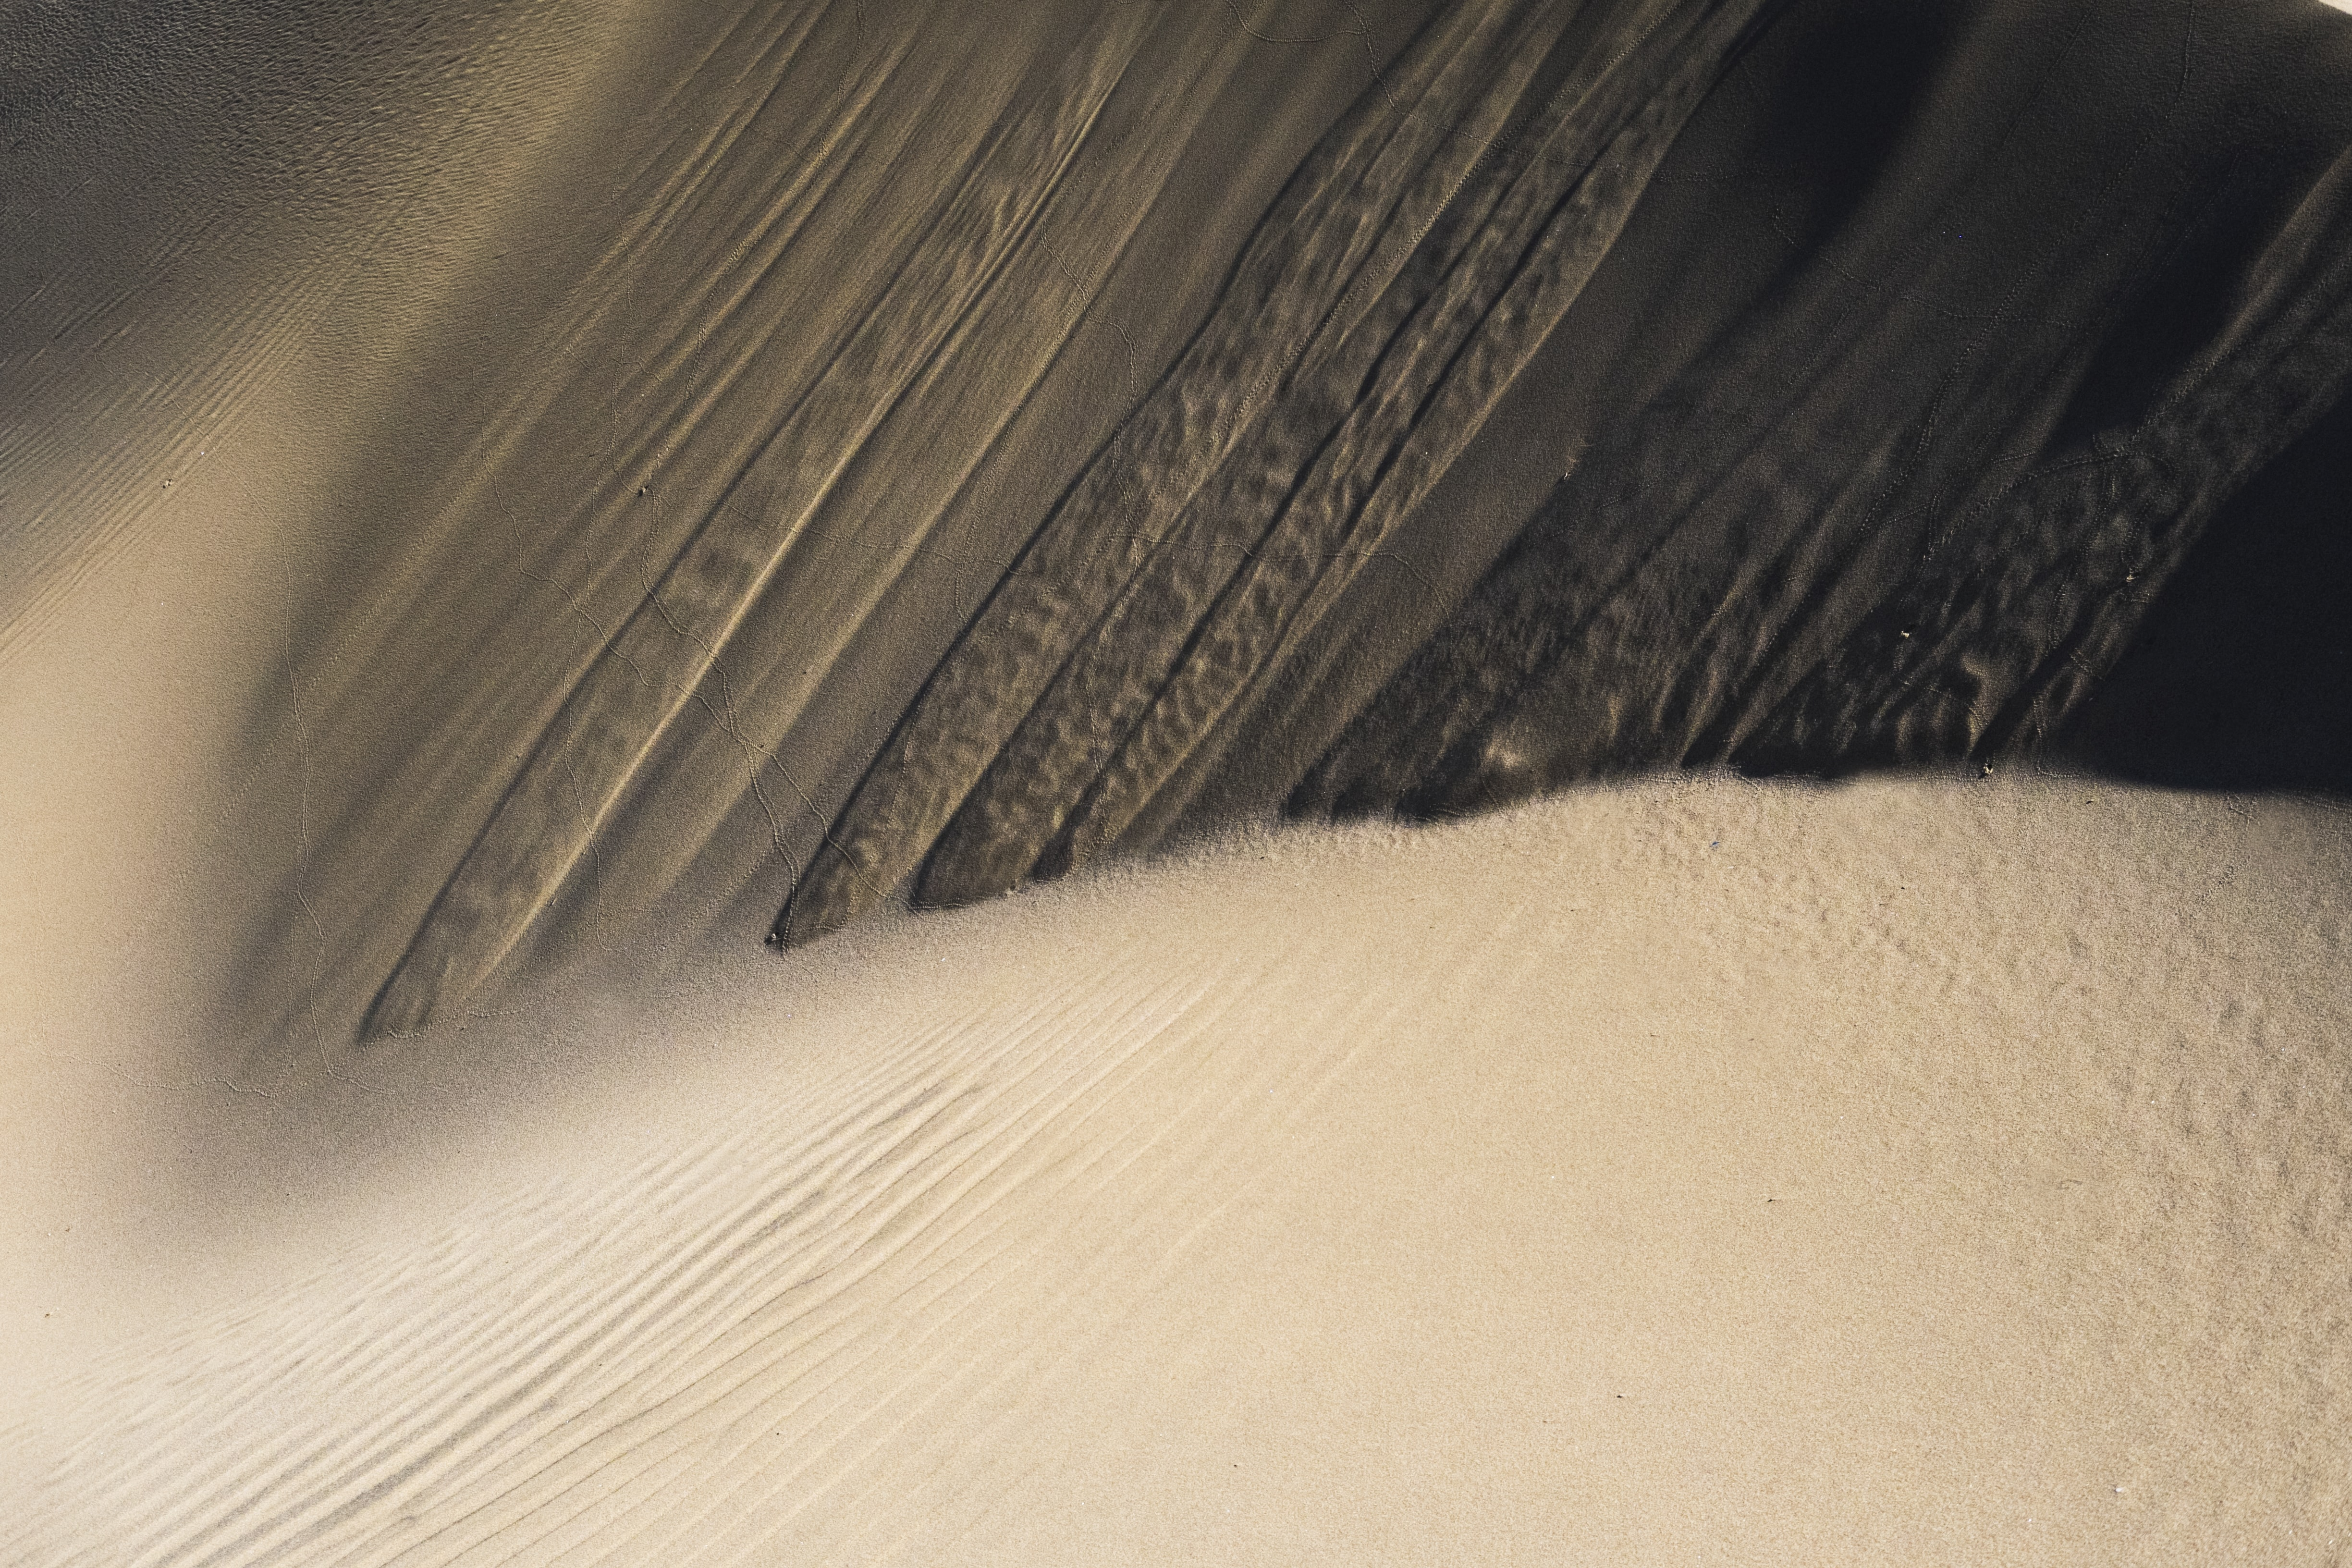 Macro shot of wavy texture and wind patterns in the sand